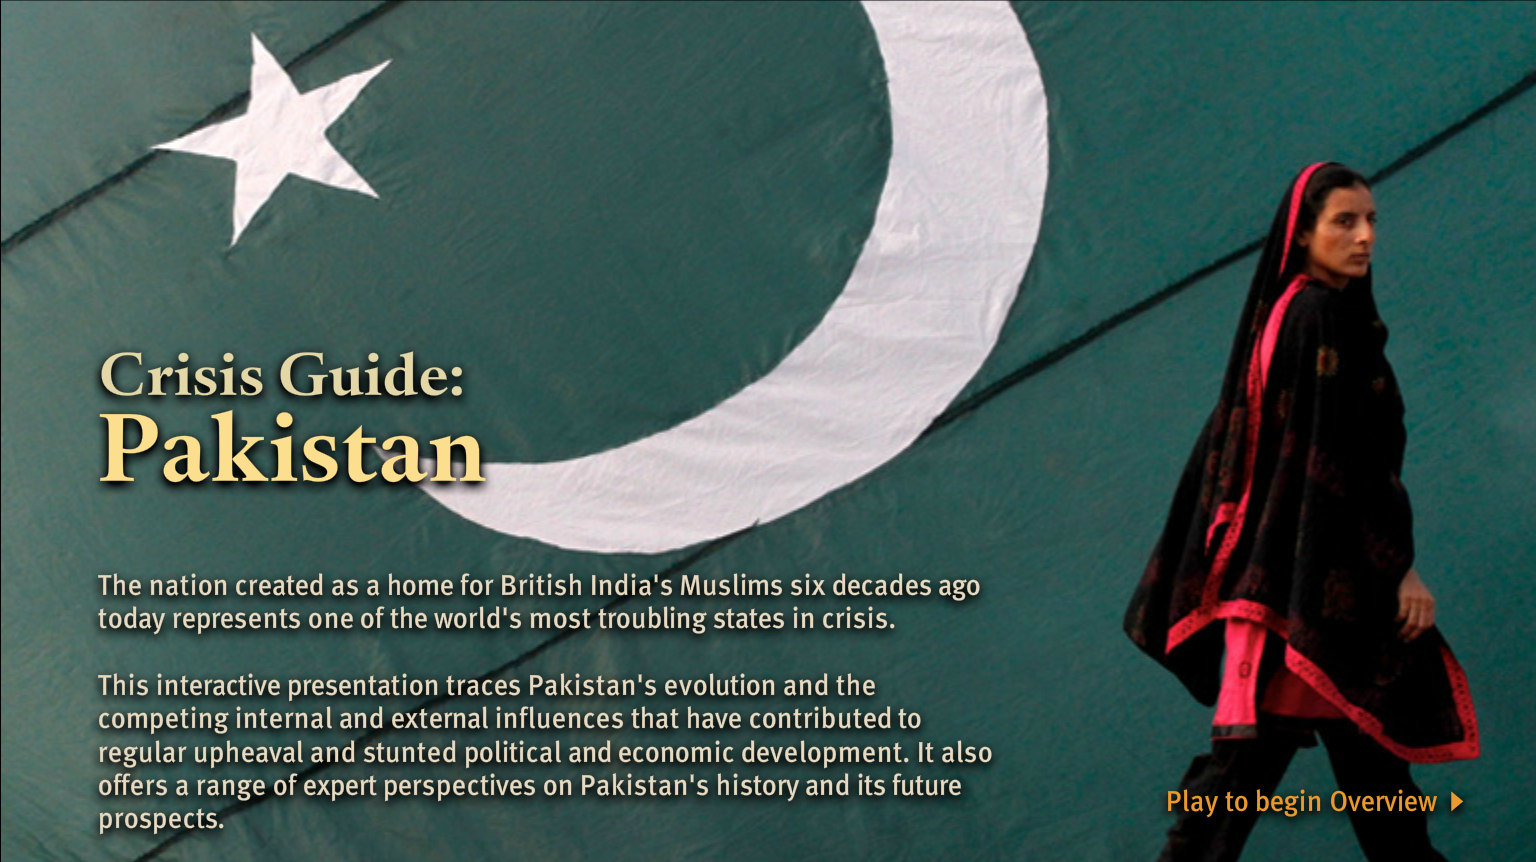 COUNCIL ON FOREIgn relations:crisis Guide Pakistan -